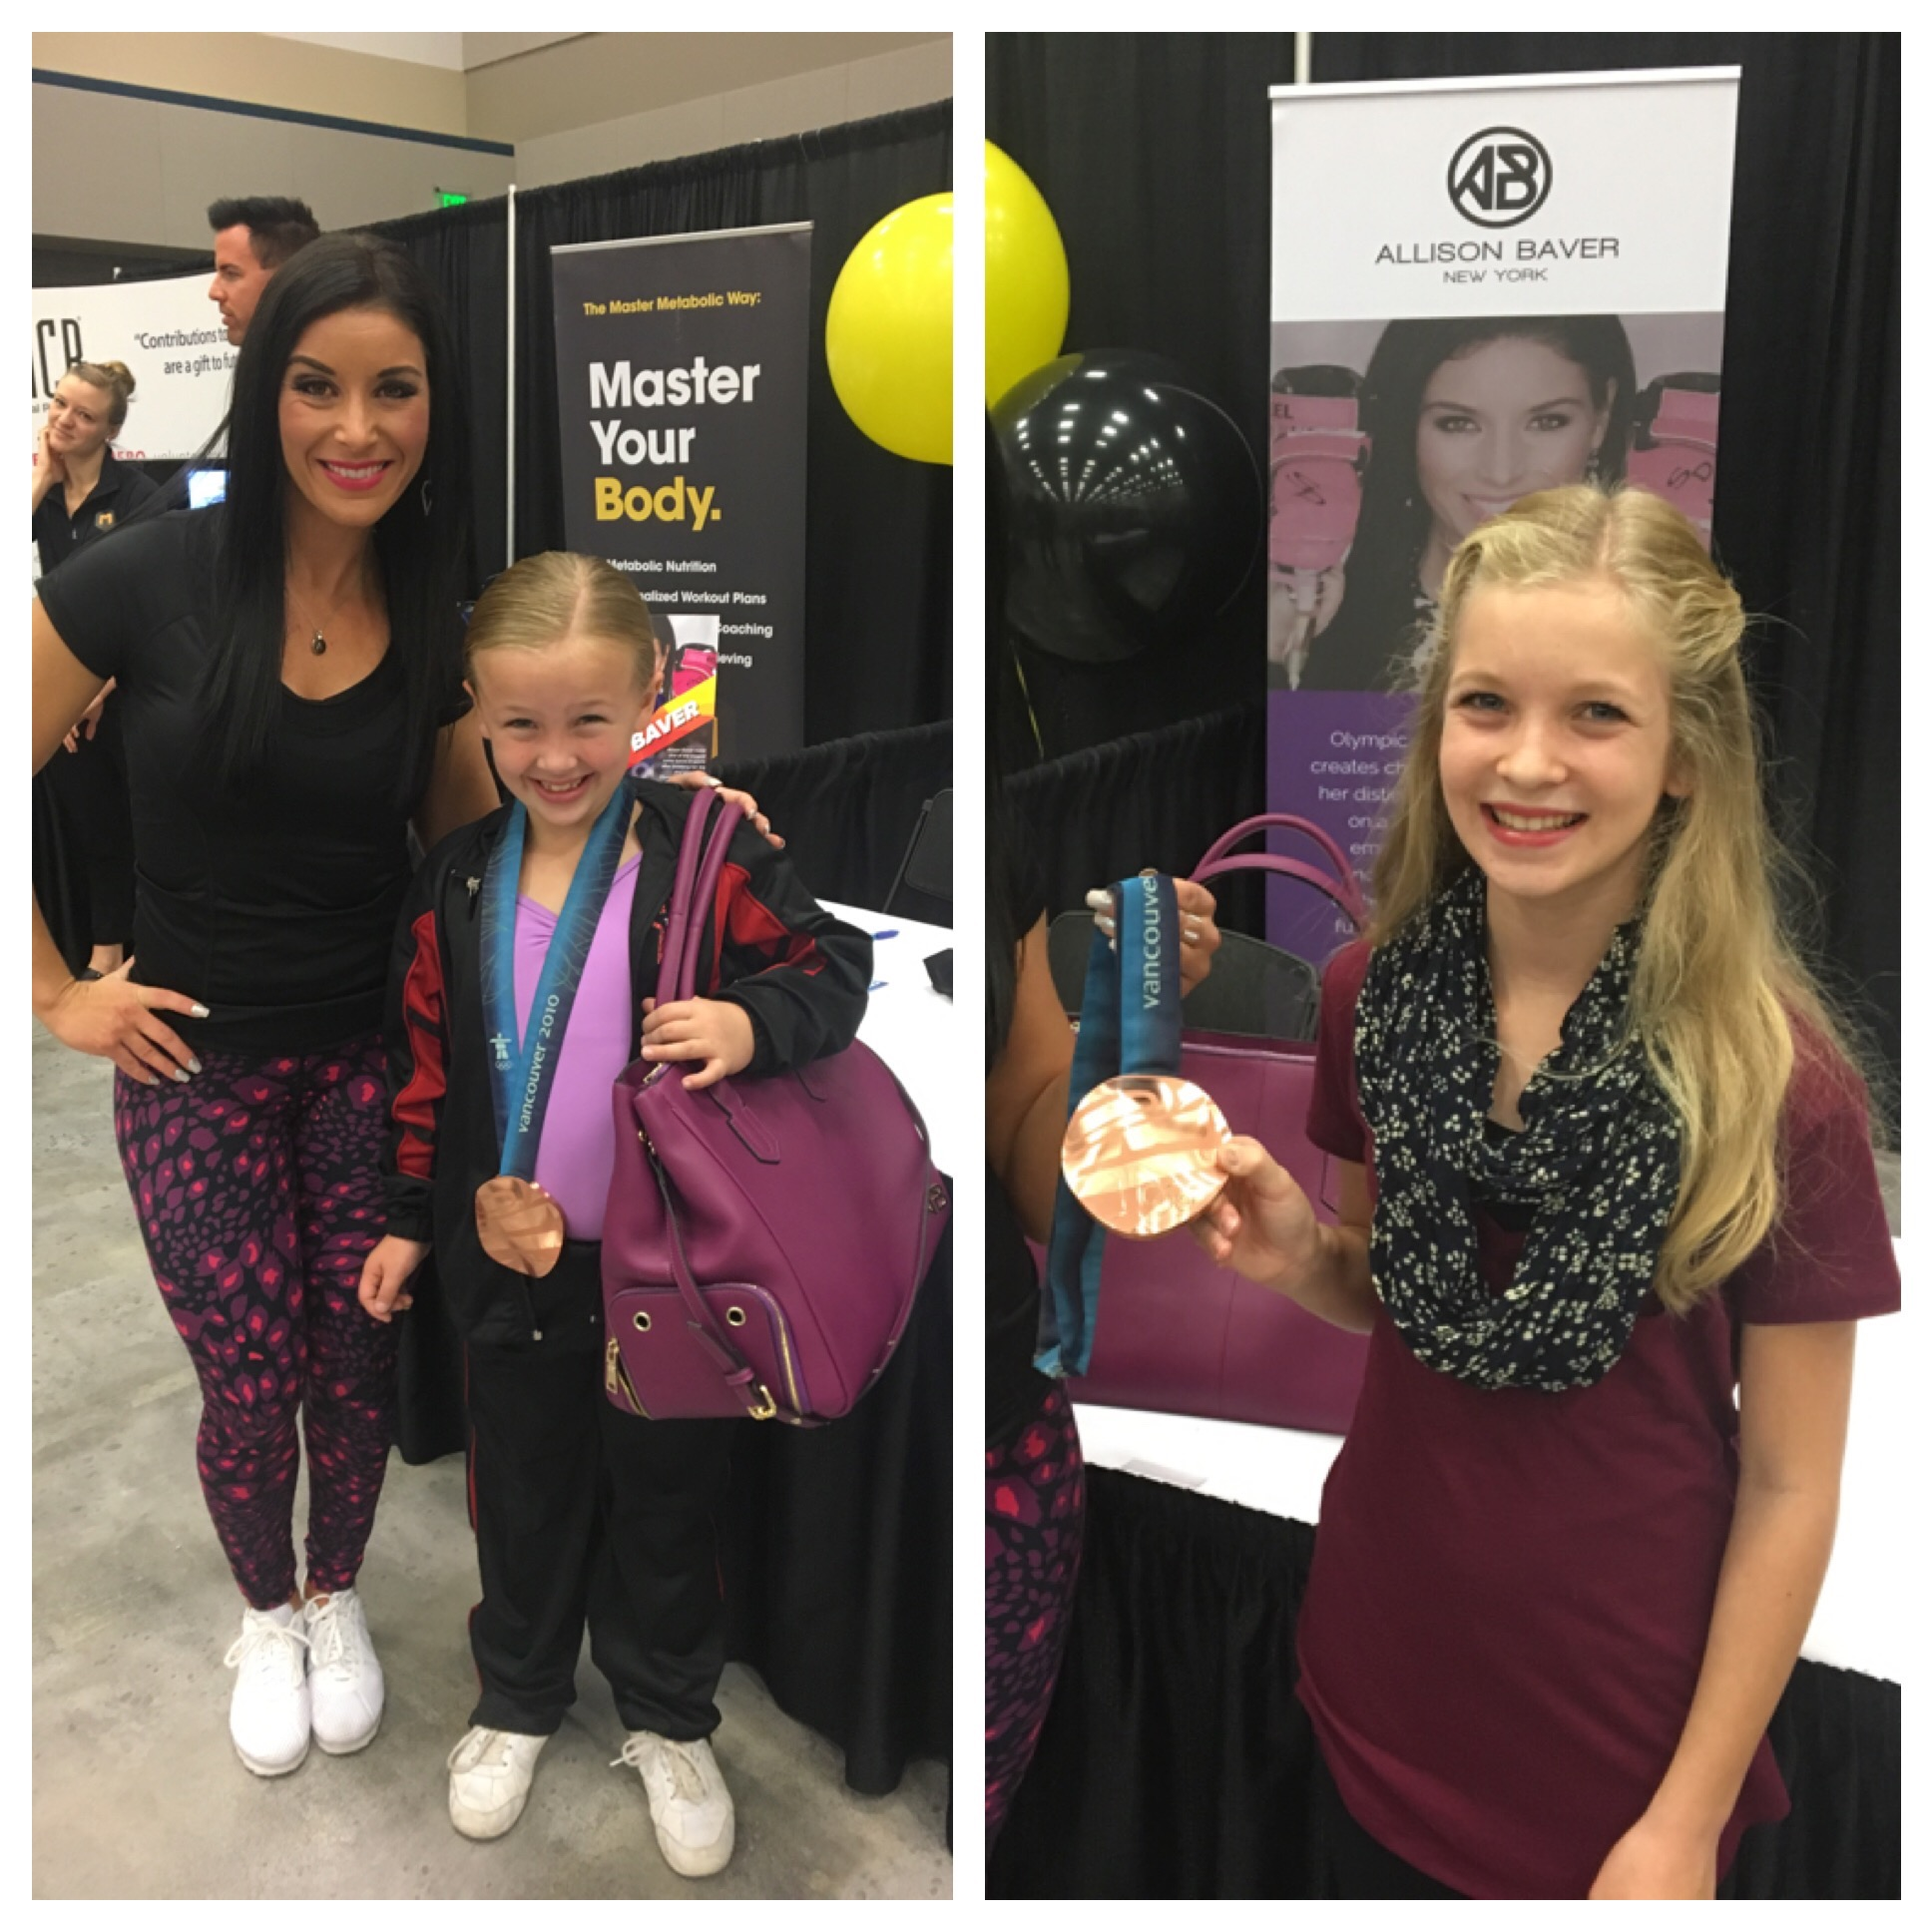 Here I am showing off the shirt, leggings, and tote I designed. Aren't these little girls are adorable.  They are so excited to see my medal. Future Boss Babes! The one I'm standing with is a dancer. She waited an hour with her Mom to listen to my speech.  Awe.